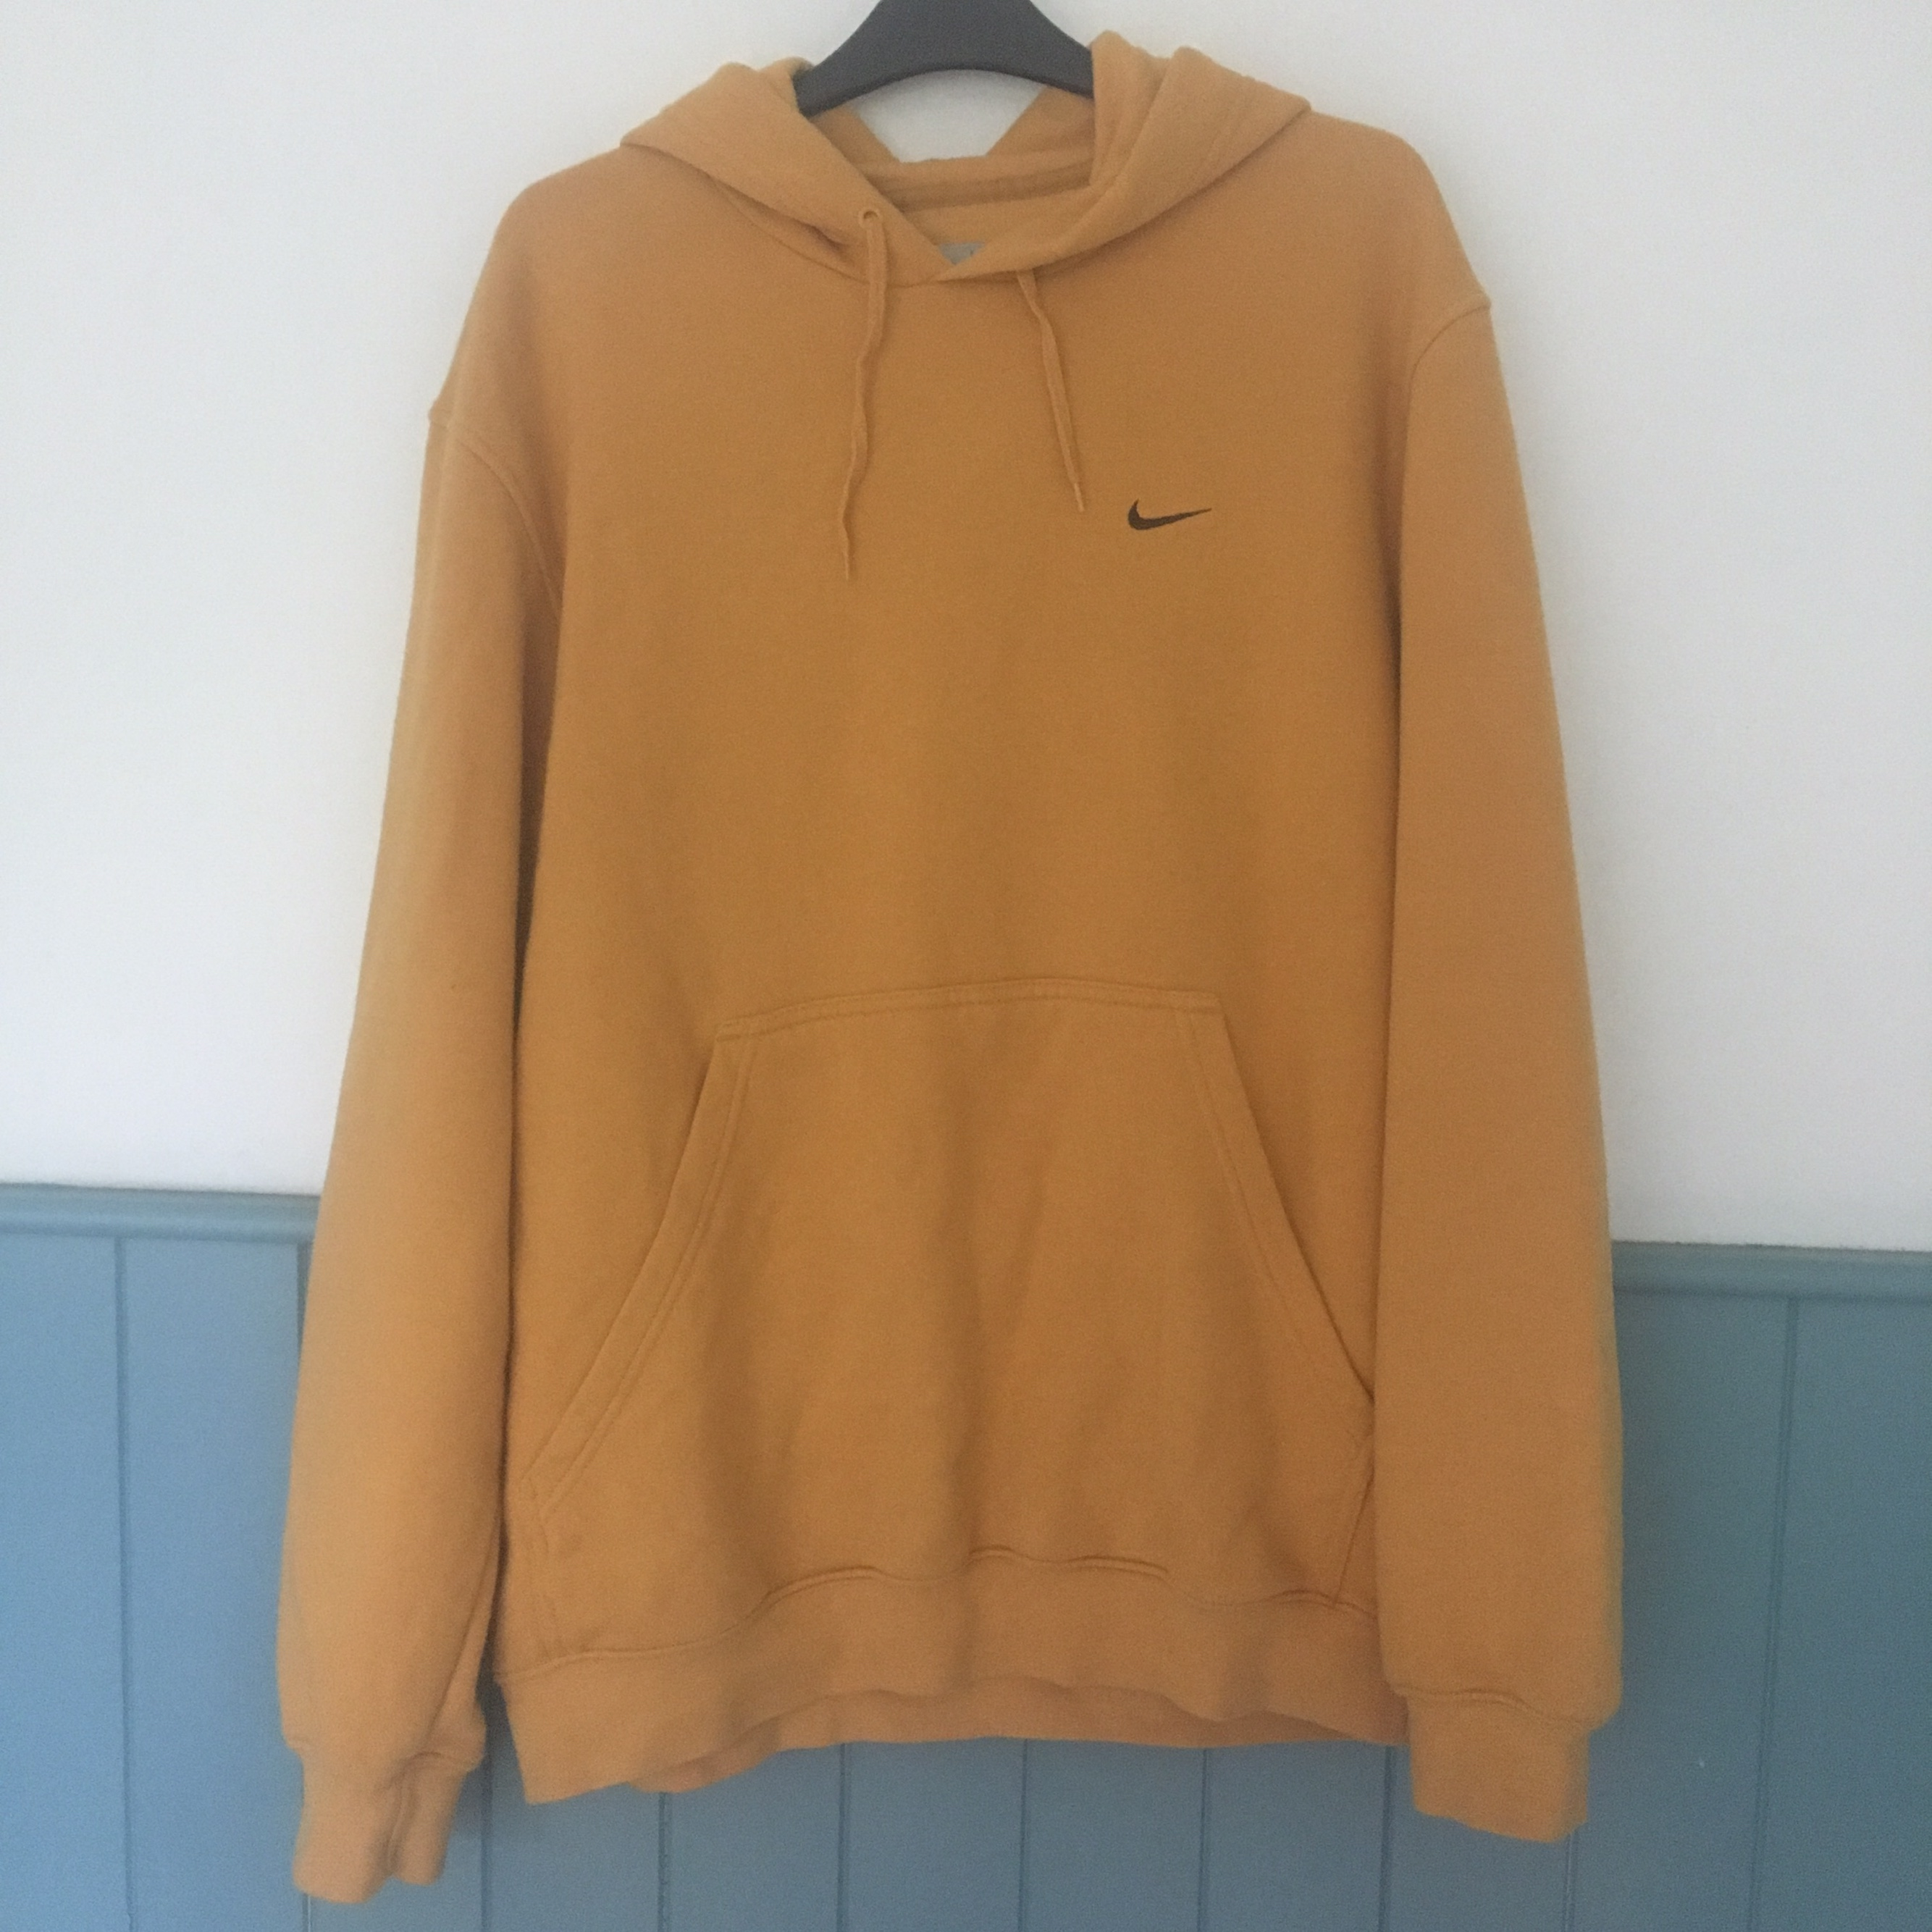 quality classic styles best Mint condition Nike mustard yellow gold hoodie •... - Depop